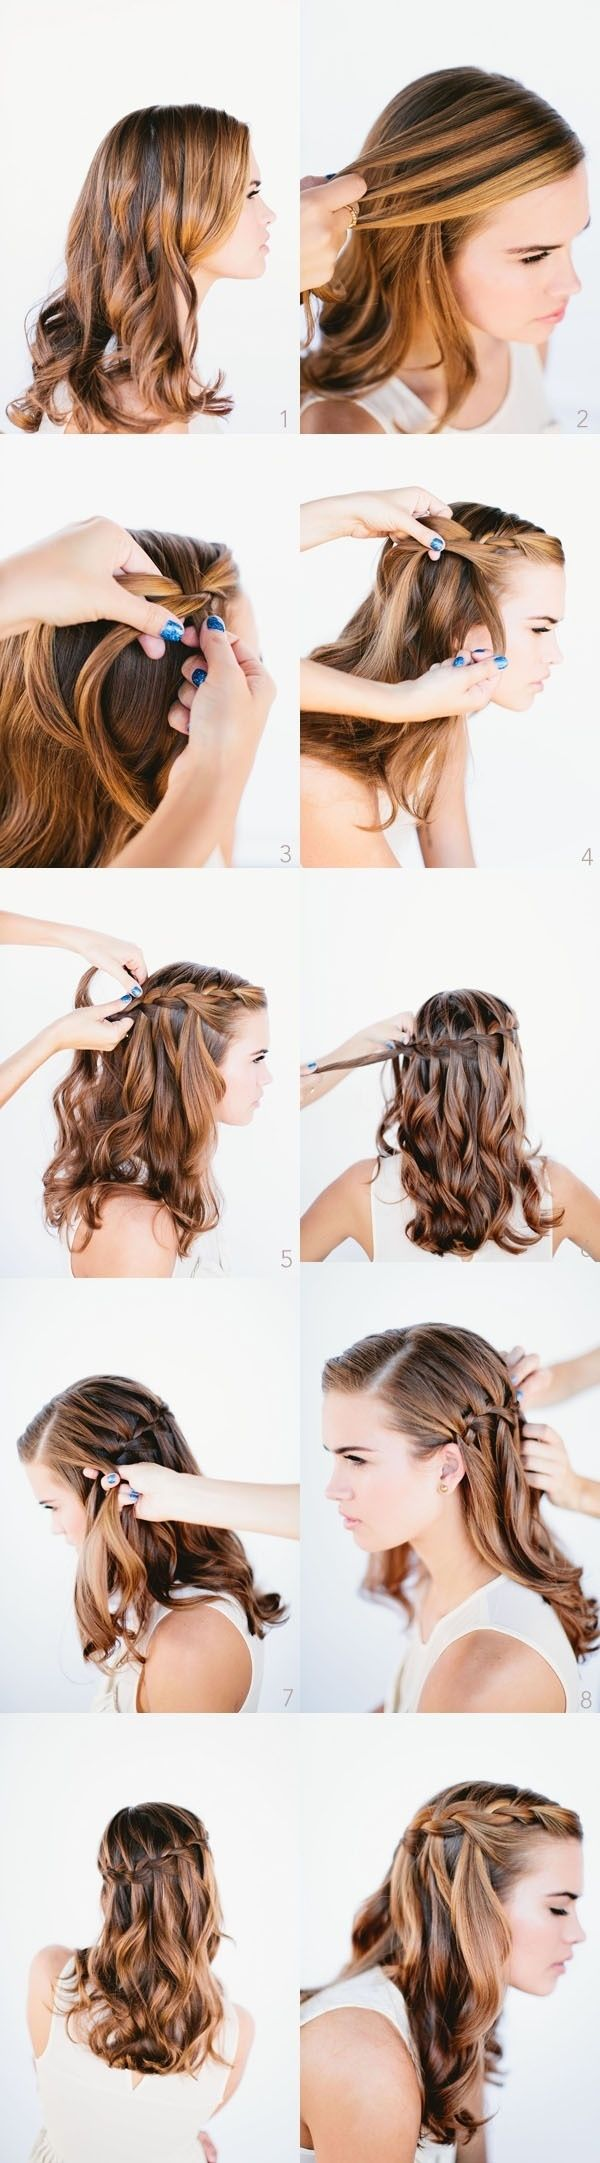 295 best Weddings images on Pinterest | Hair makeup, Hair and makeup ...